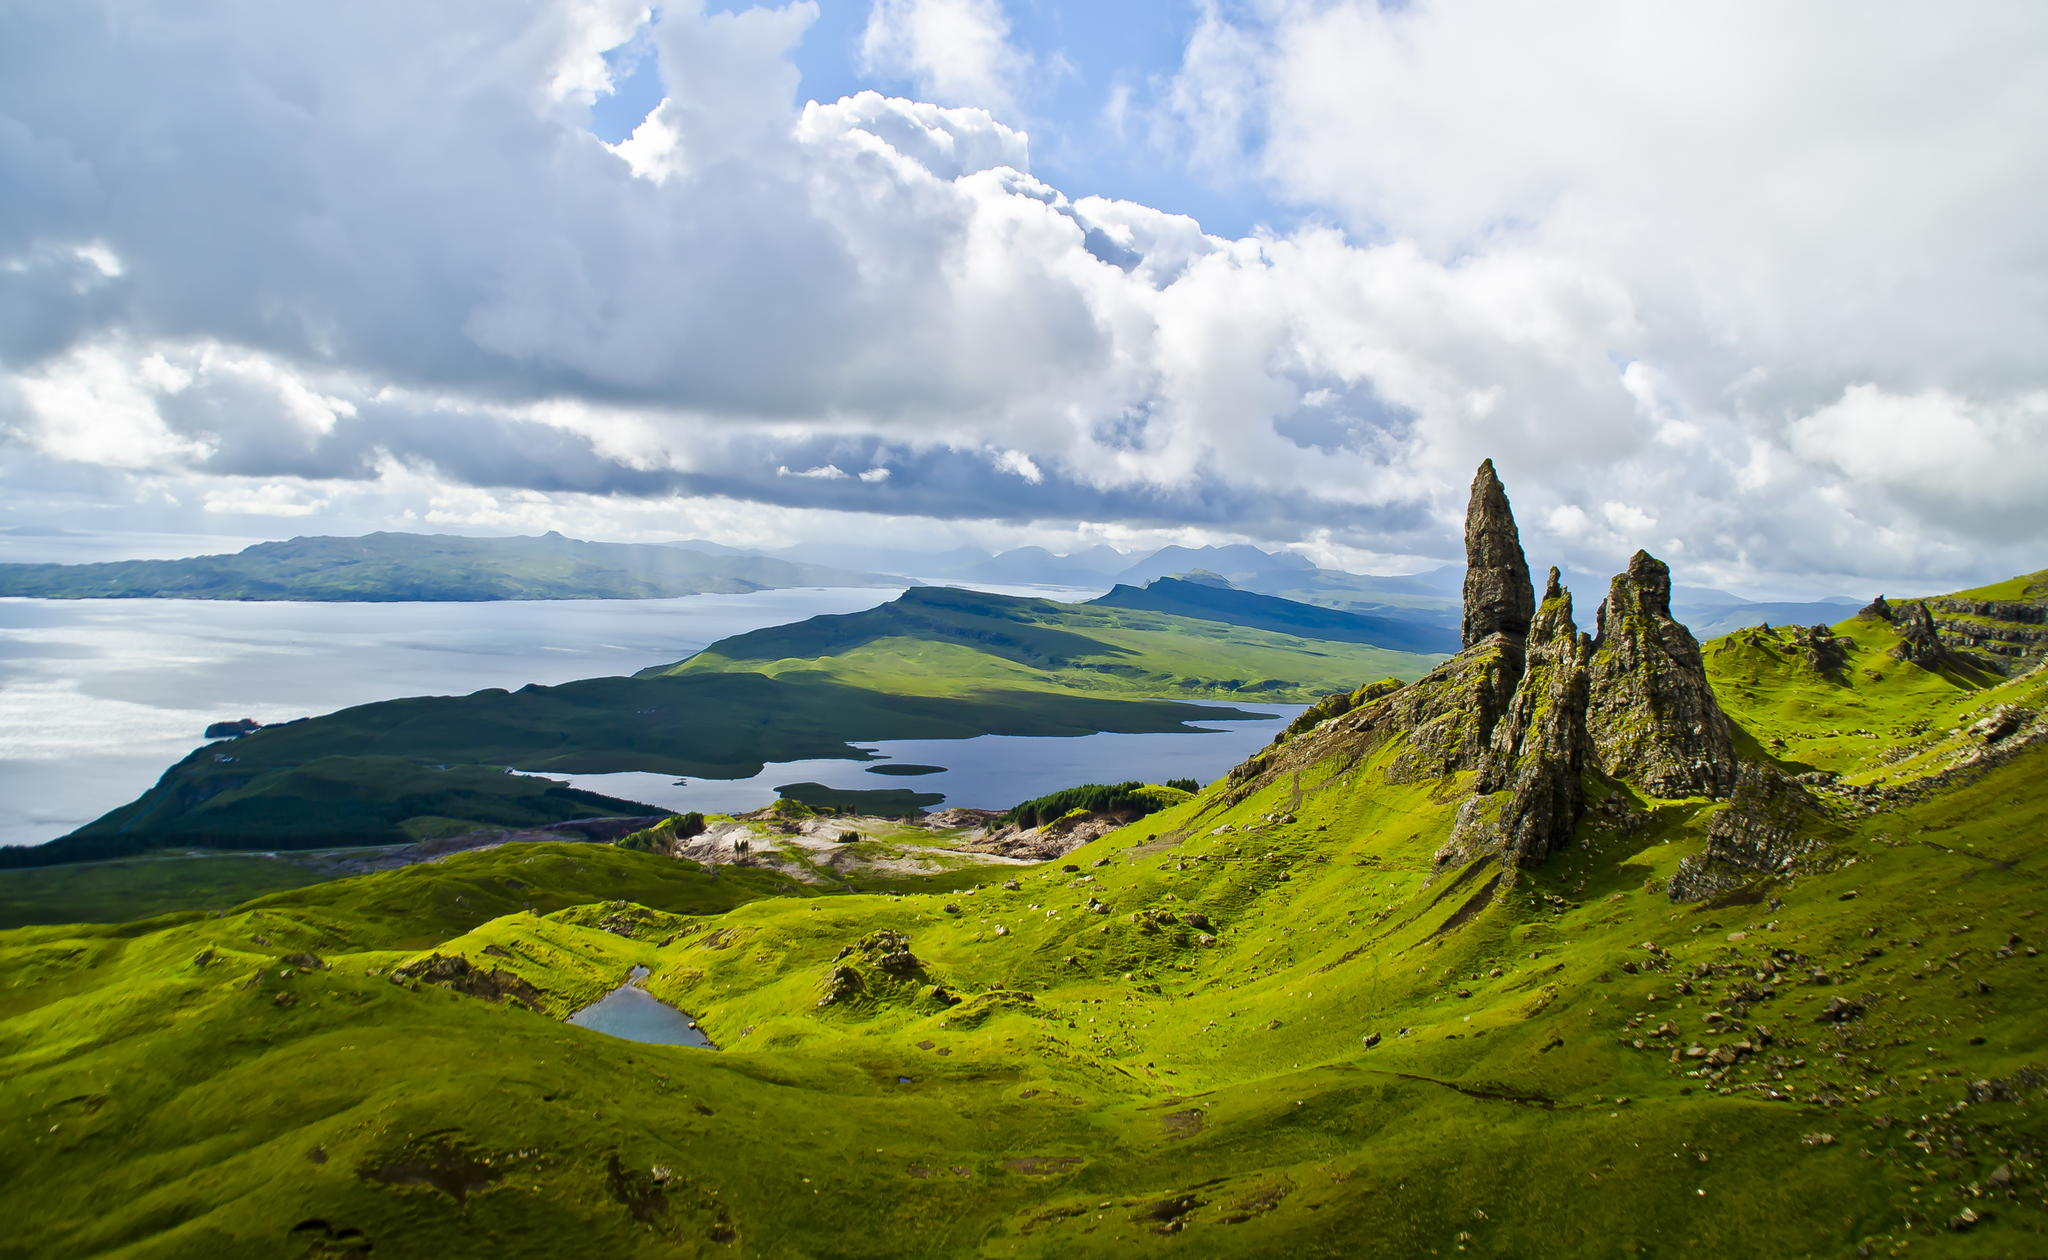 The Old Man Of Storr in the Isle Of Skye, Scotland. Photo by Unai.